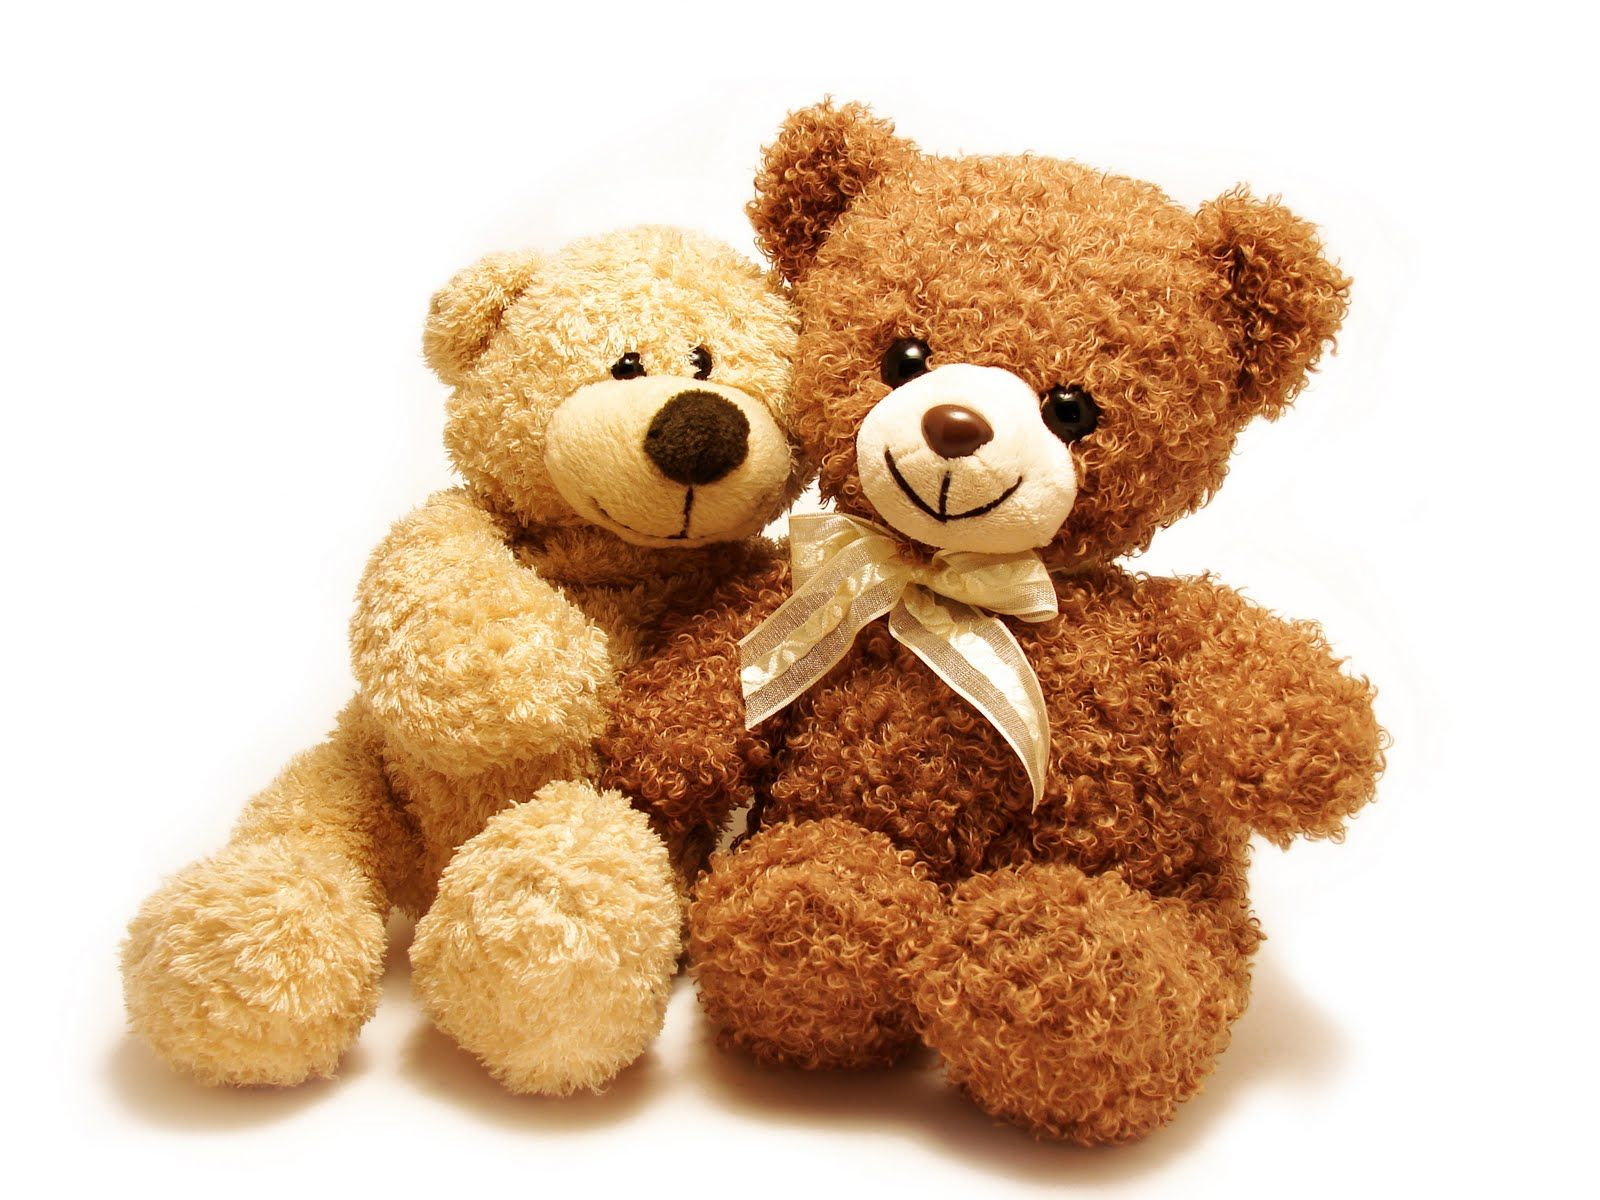 12 best teddy bear images on pinterest bear wallpaper cute sweet teddy couple love hd photos free download 1080p voltagebd Images